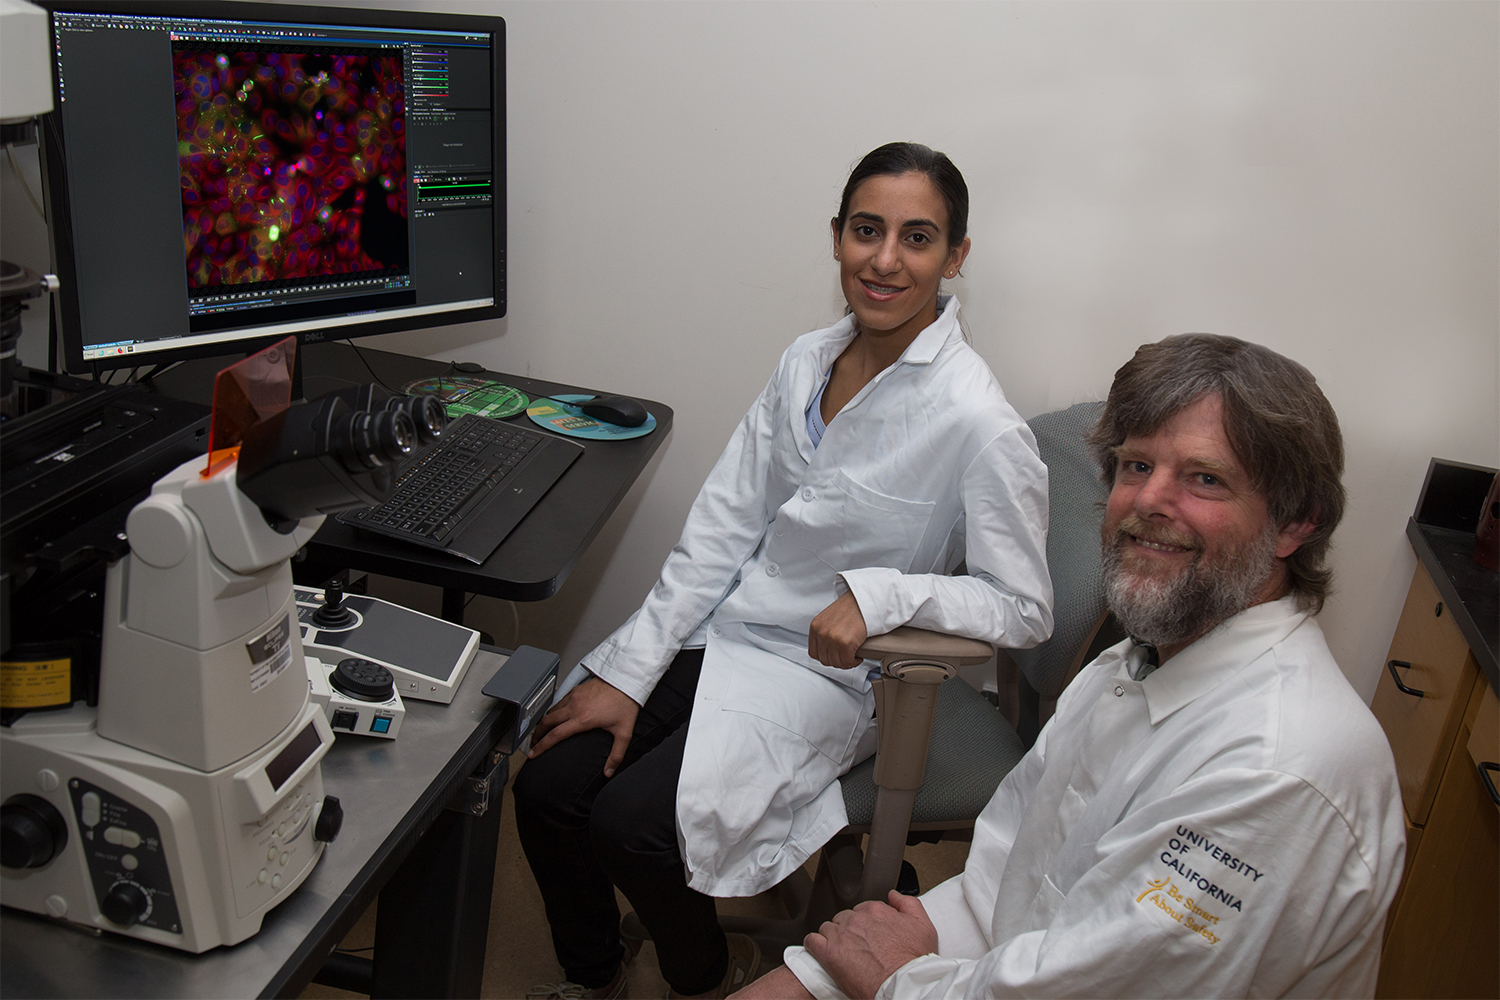 Bita Shahrvini (left) sits next to Assistant Professor Enoch Baldwin (right), who helped Sharhvini further her undergraduate research interest in enzymology, the study of enzymes. David Slipher/UC Davis